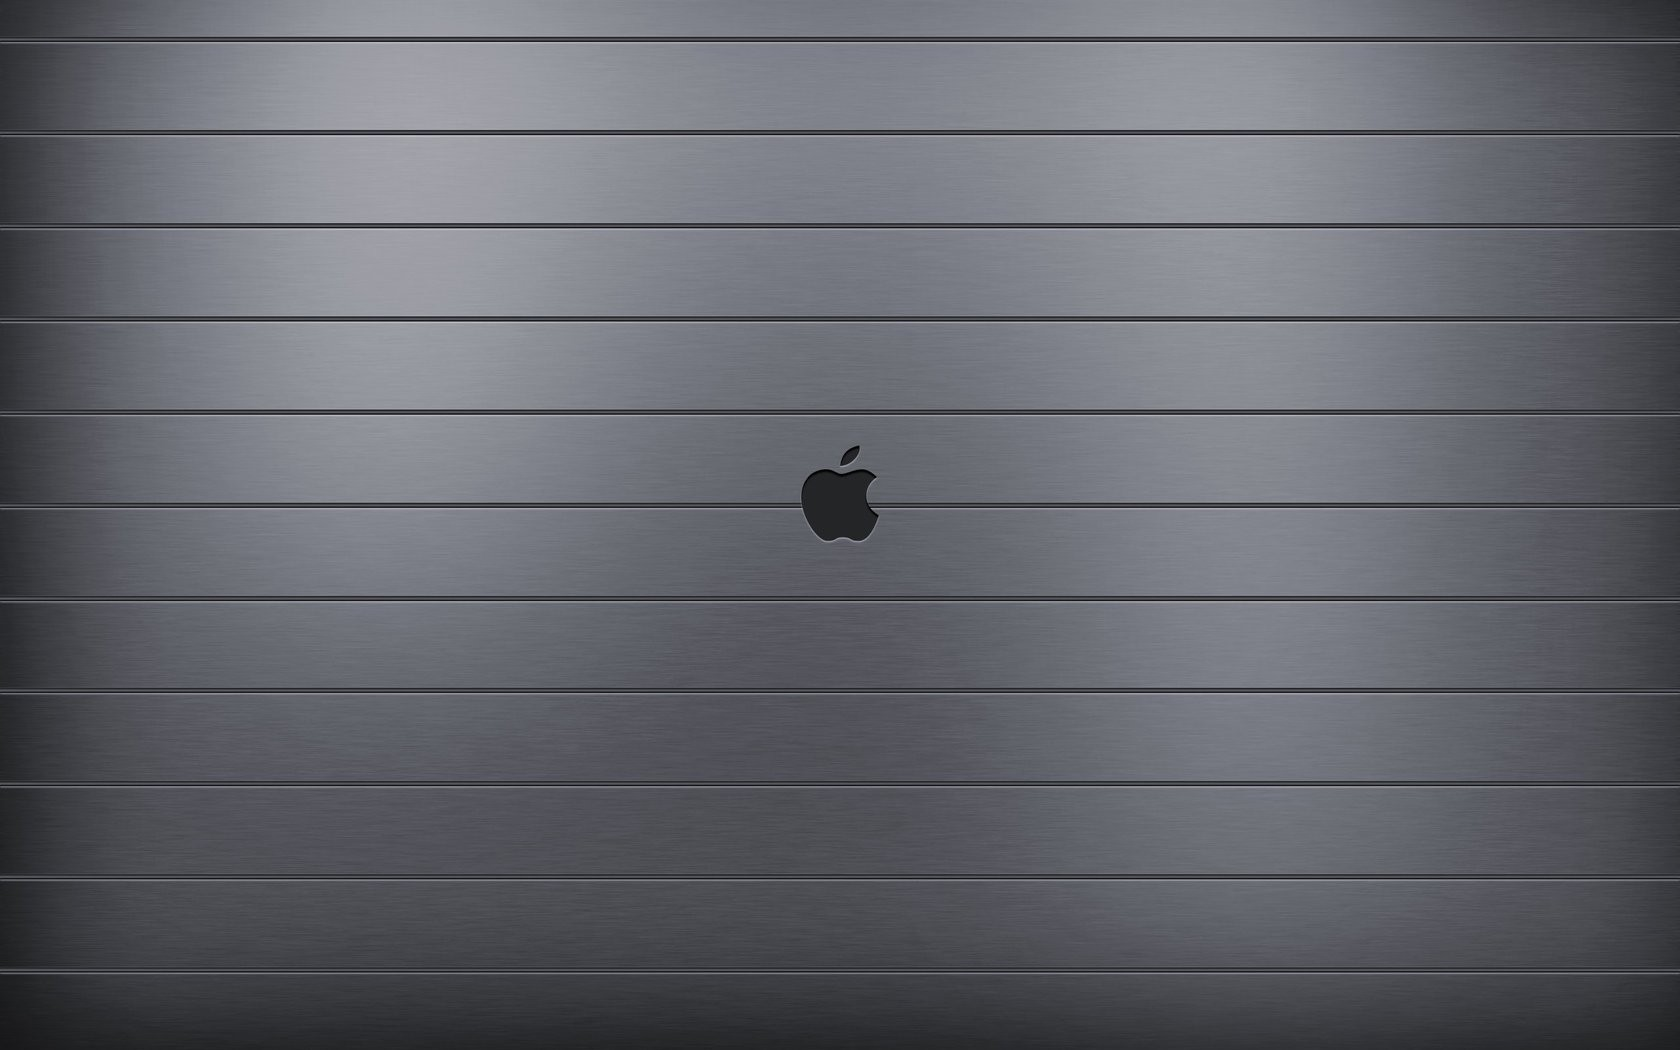 apple on metal wallpapers | apple on metal stock photos